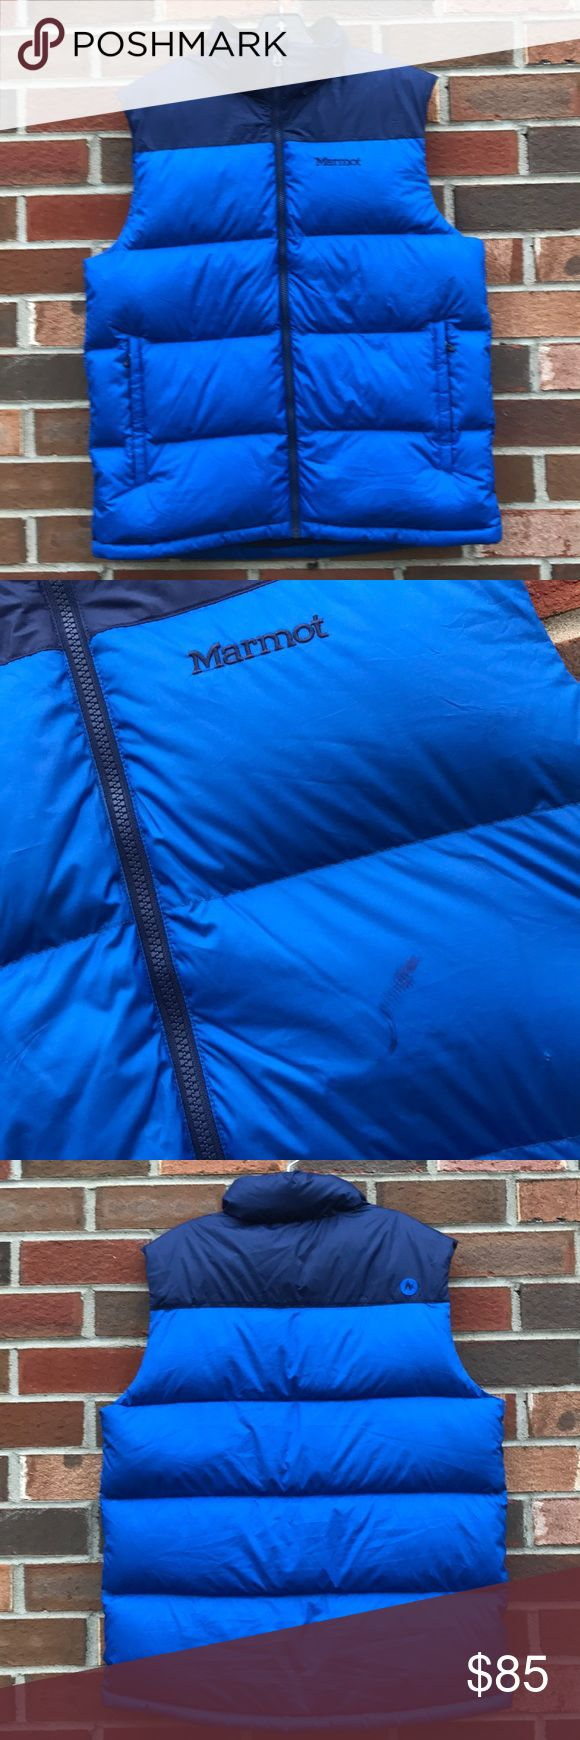 "NWT Marmot down vest men's size L New with tags! Awesome down filled blue vest, men's size L. Brand is Marmot. Has two zippered pockets on the front. Manufacturer ""flaw"" of a dark blue color in the front, see second photo. Obviously doesn't affect use! Just a materials/fabric color error. Marmot Jackets & Coats Vests"